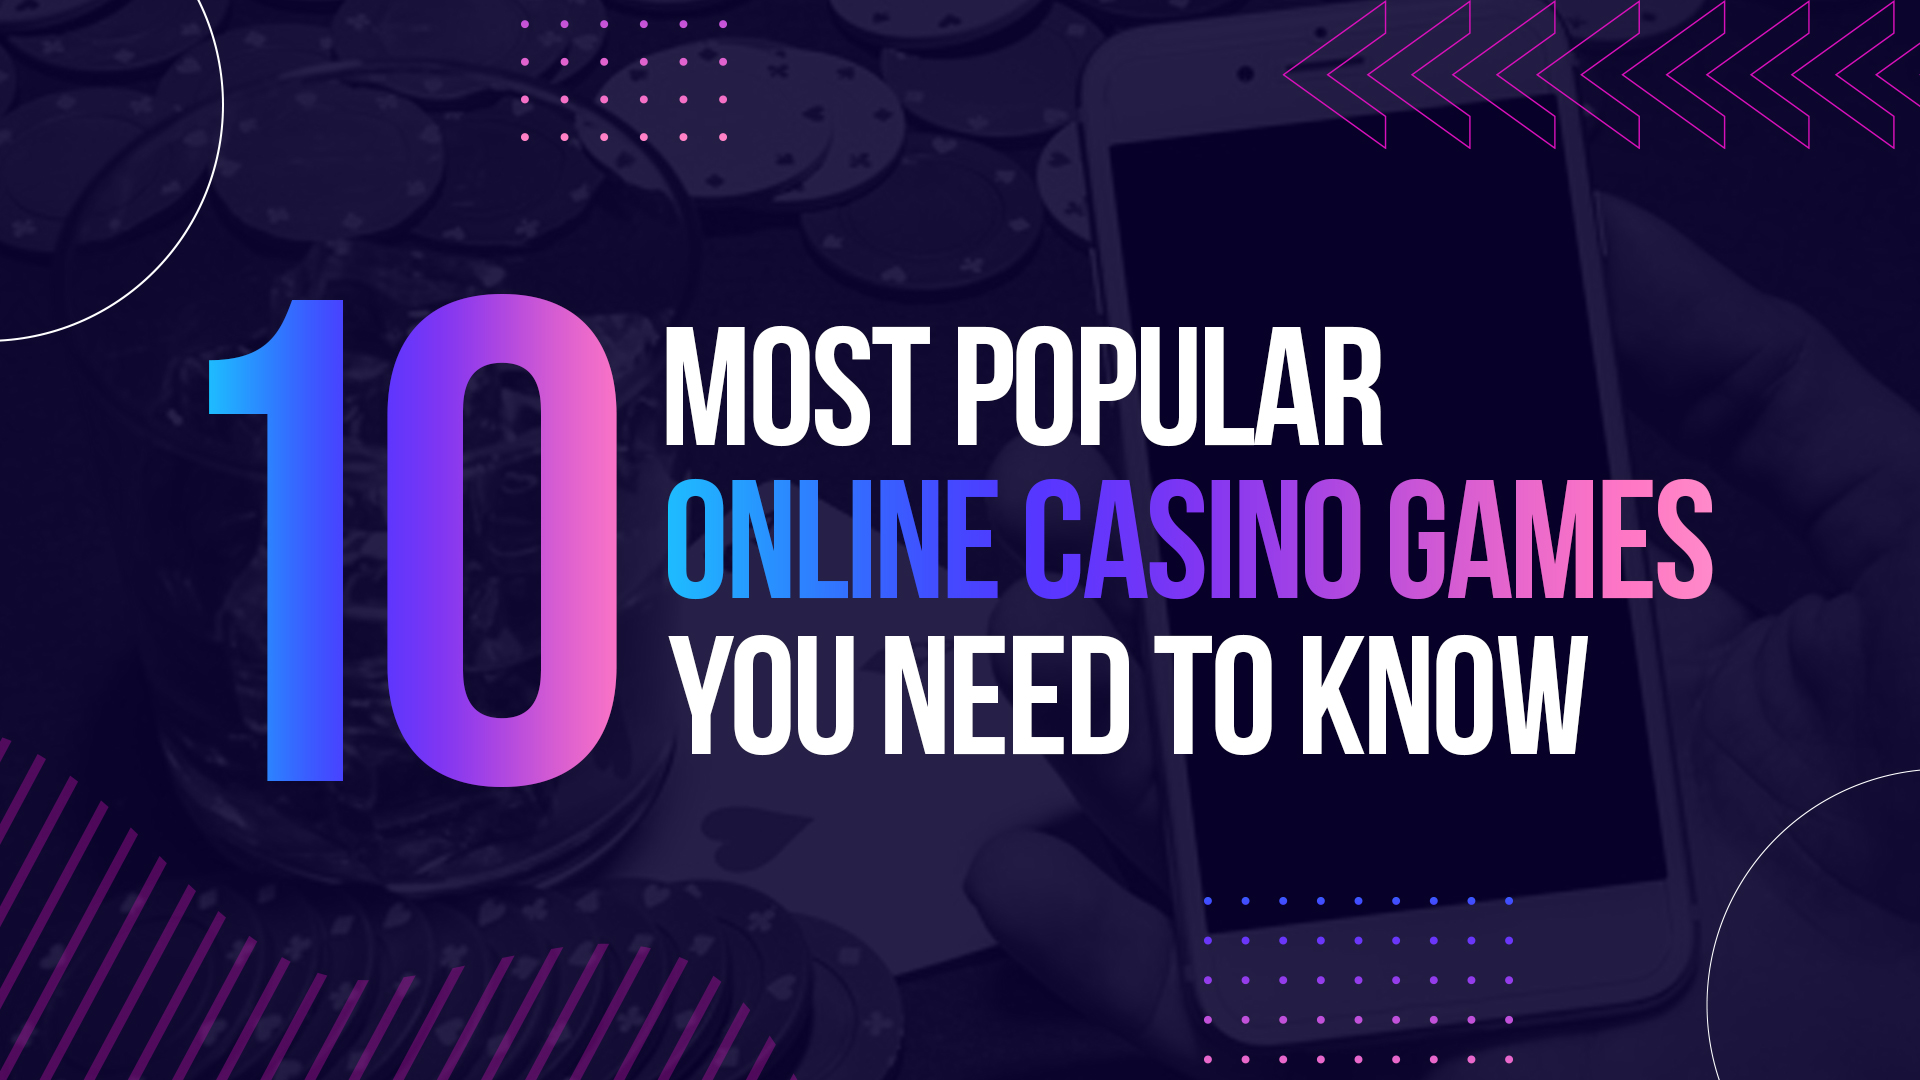 10 Most Popular Online Casino Games You Need to Know